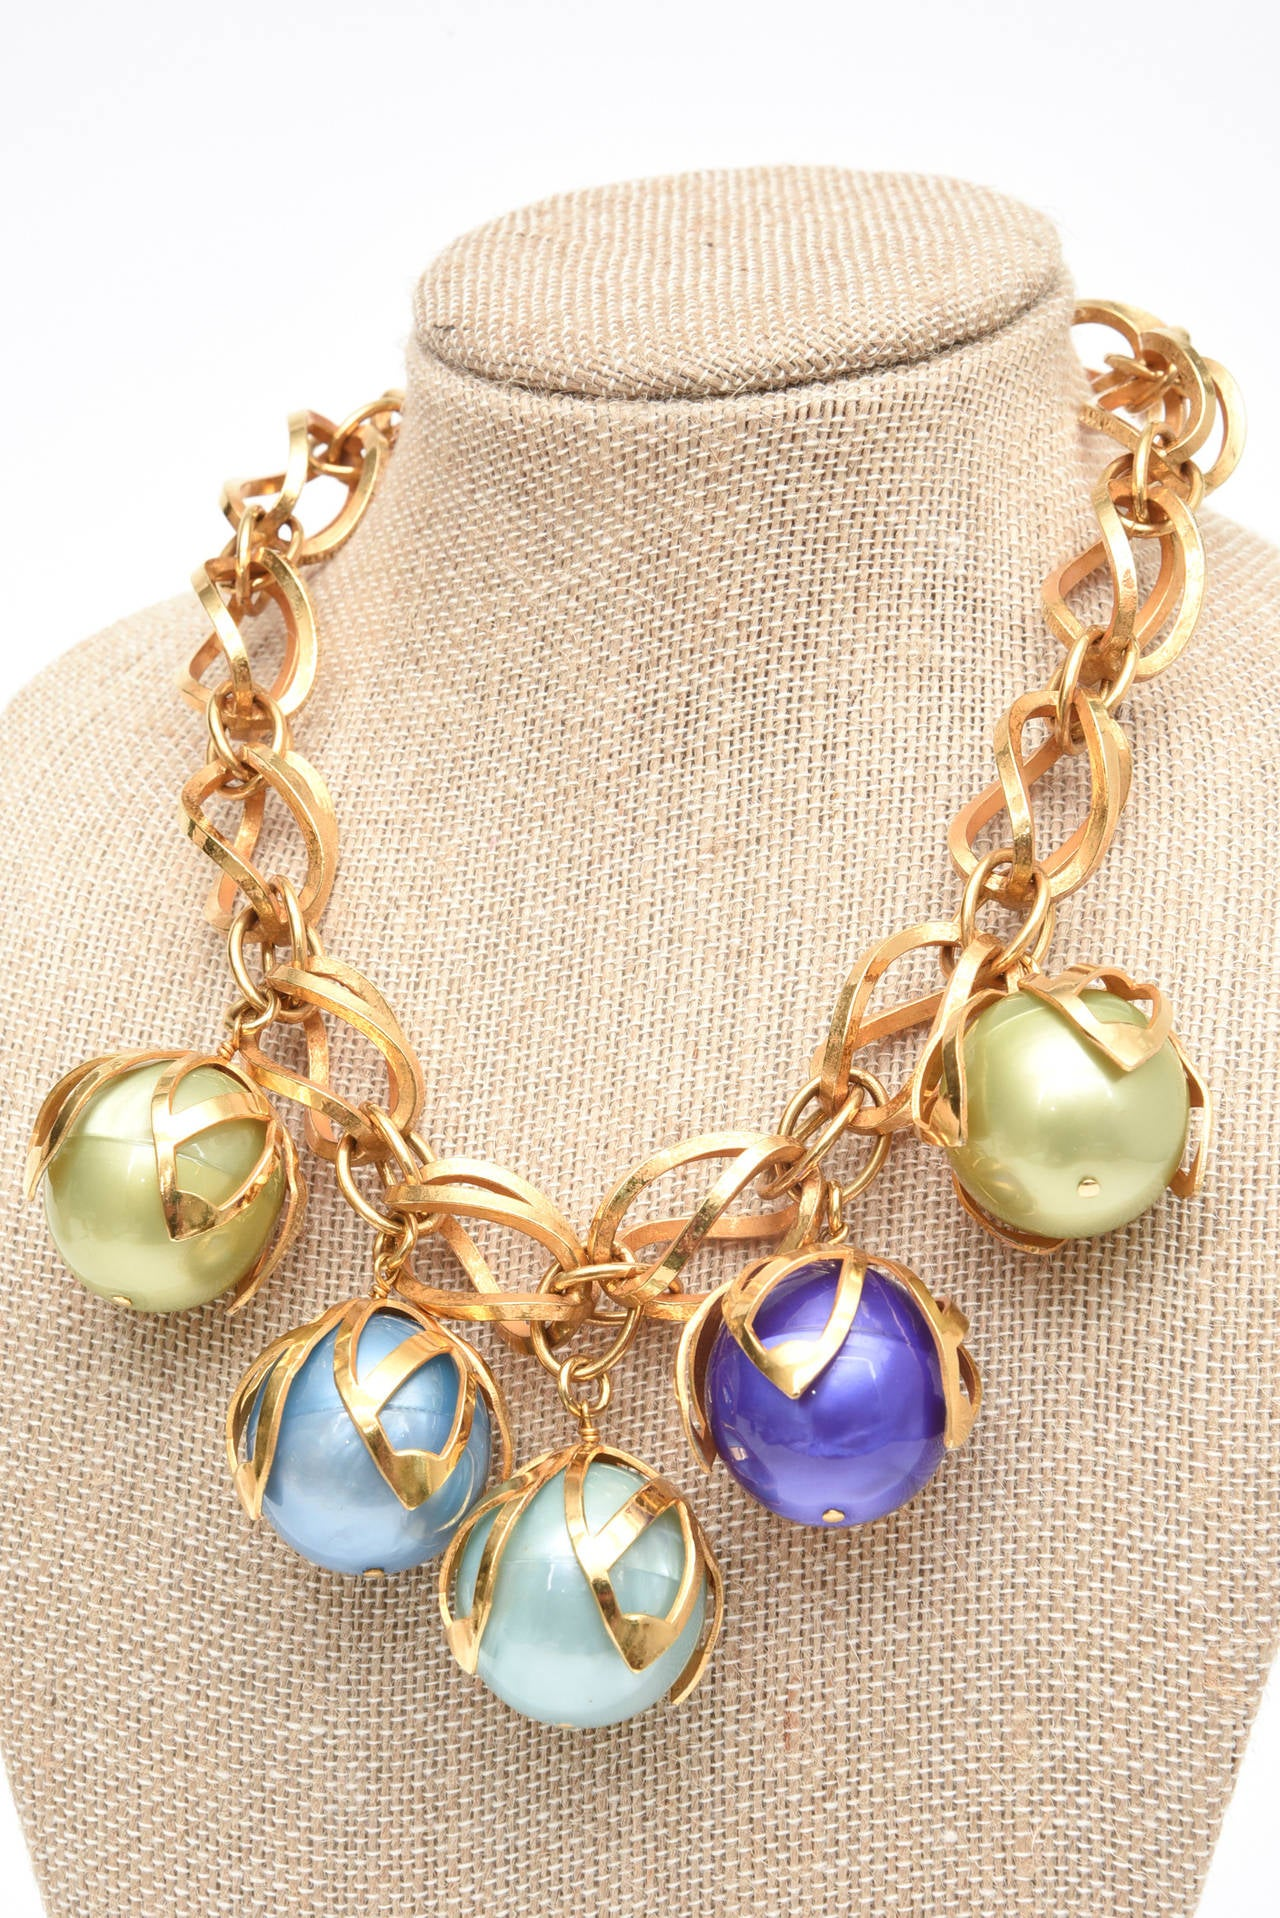 Dominique Aurientis 4 Ball French Gold Link and Resin Ball Necklace  In Excellent Condition For Sale In North Miami, FL